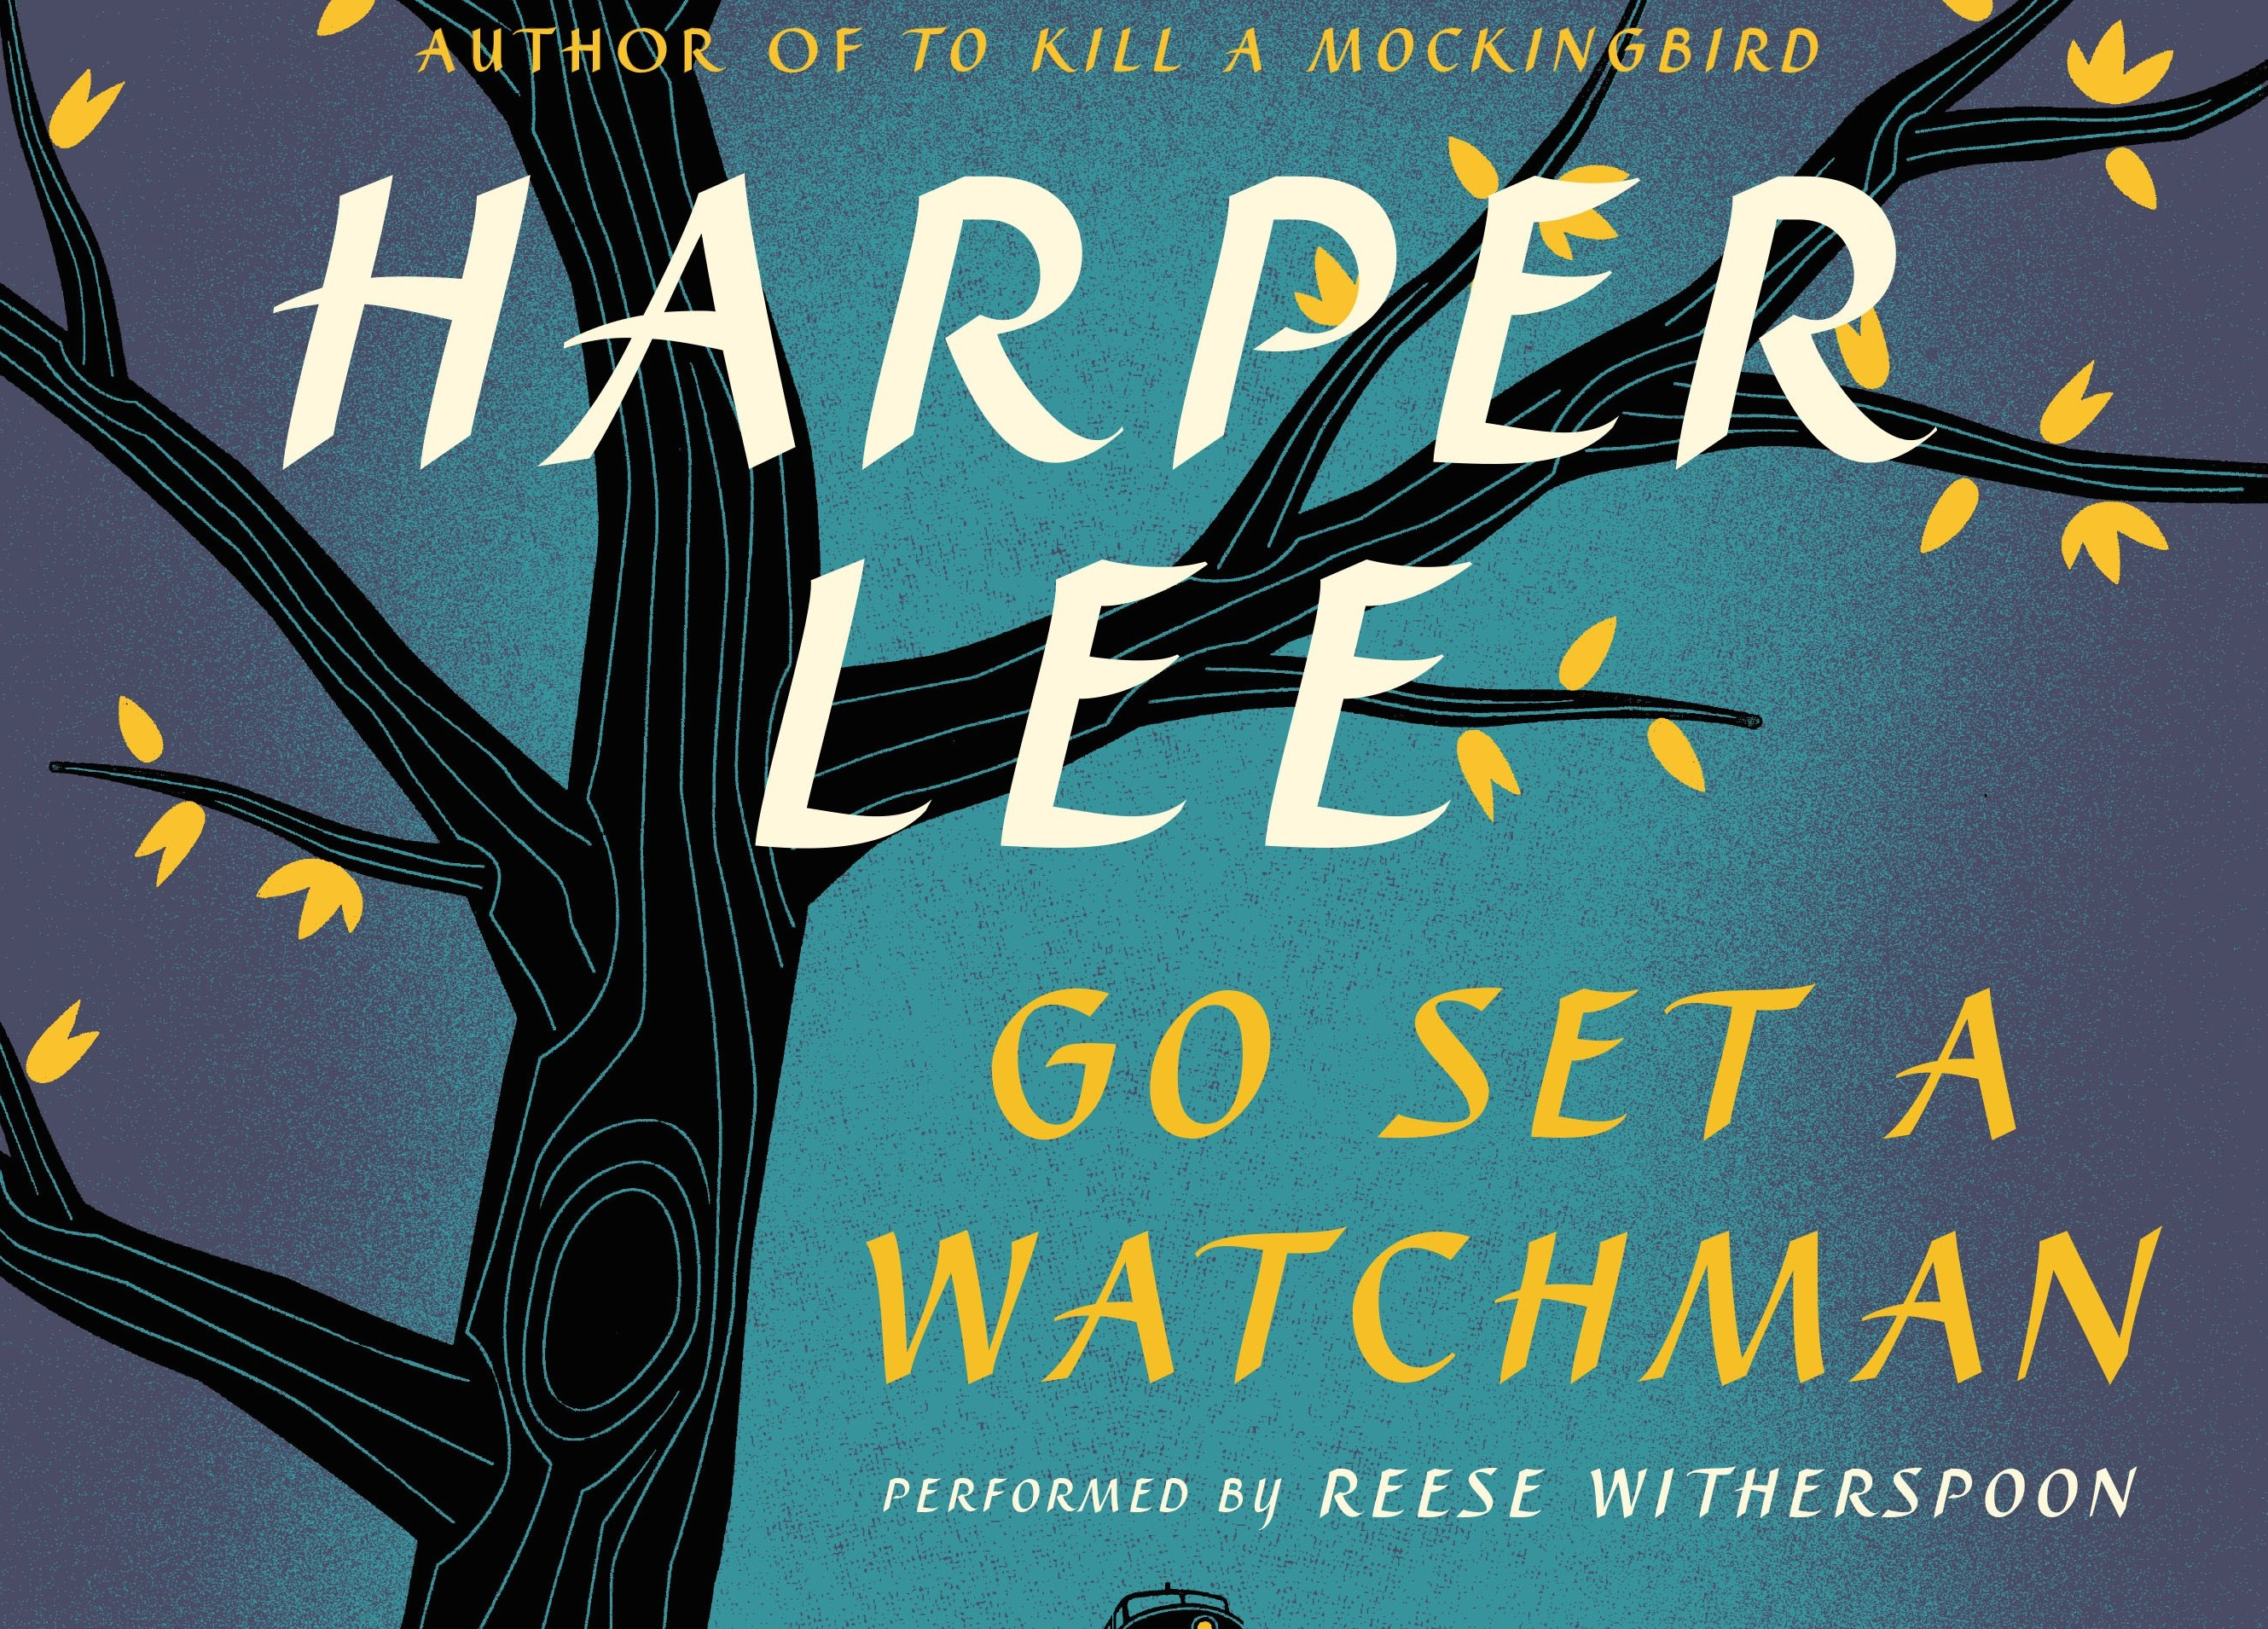 And now, Reese Witherspoon will read you the first chapter of Harper Lee's 'Mockingbird' sequel